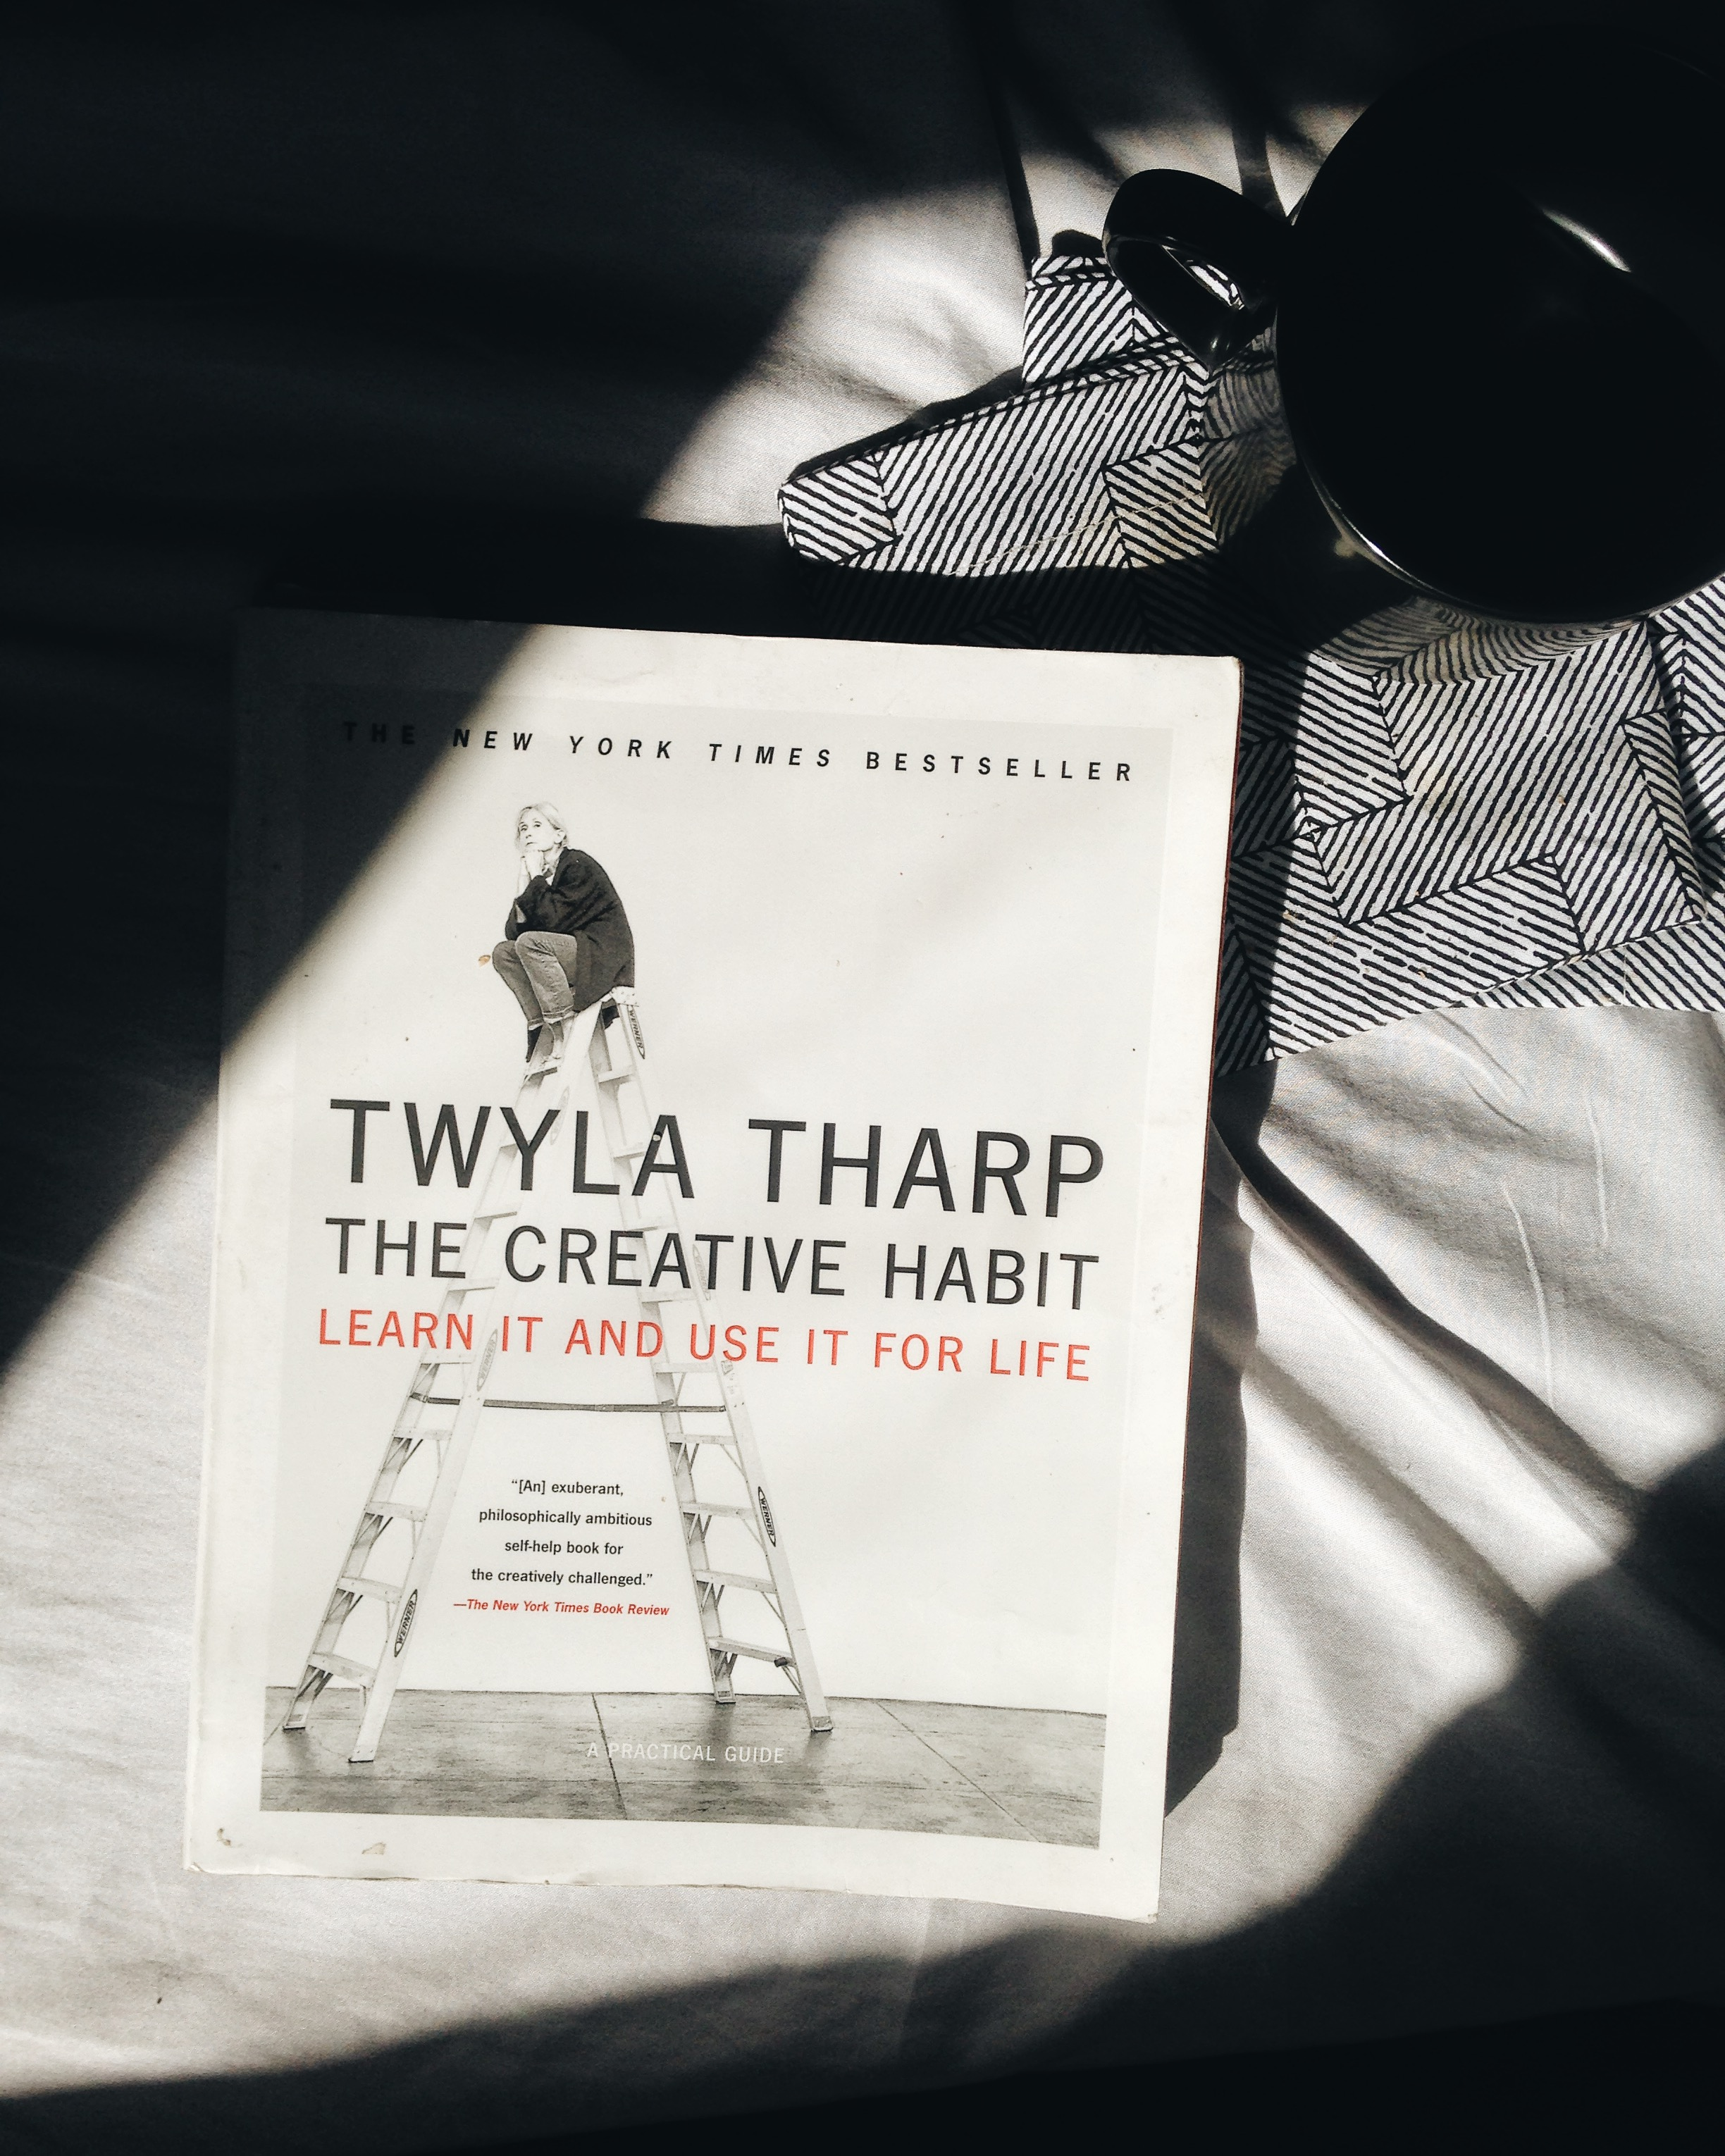 The Creative Habit by Twyla Tharp | Ruby Josephine